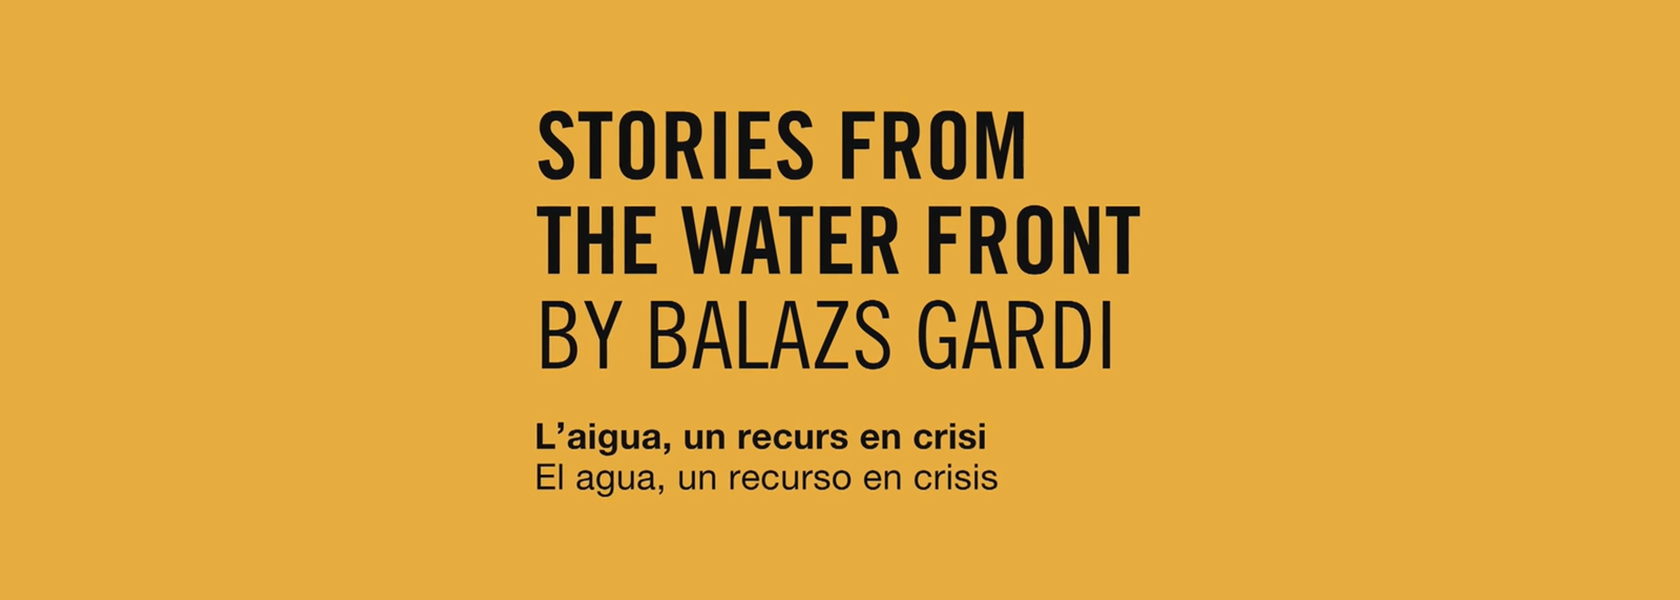 Stories from the water front